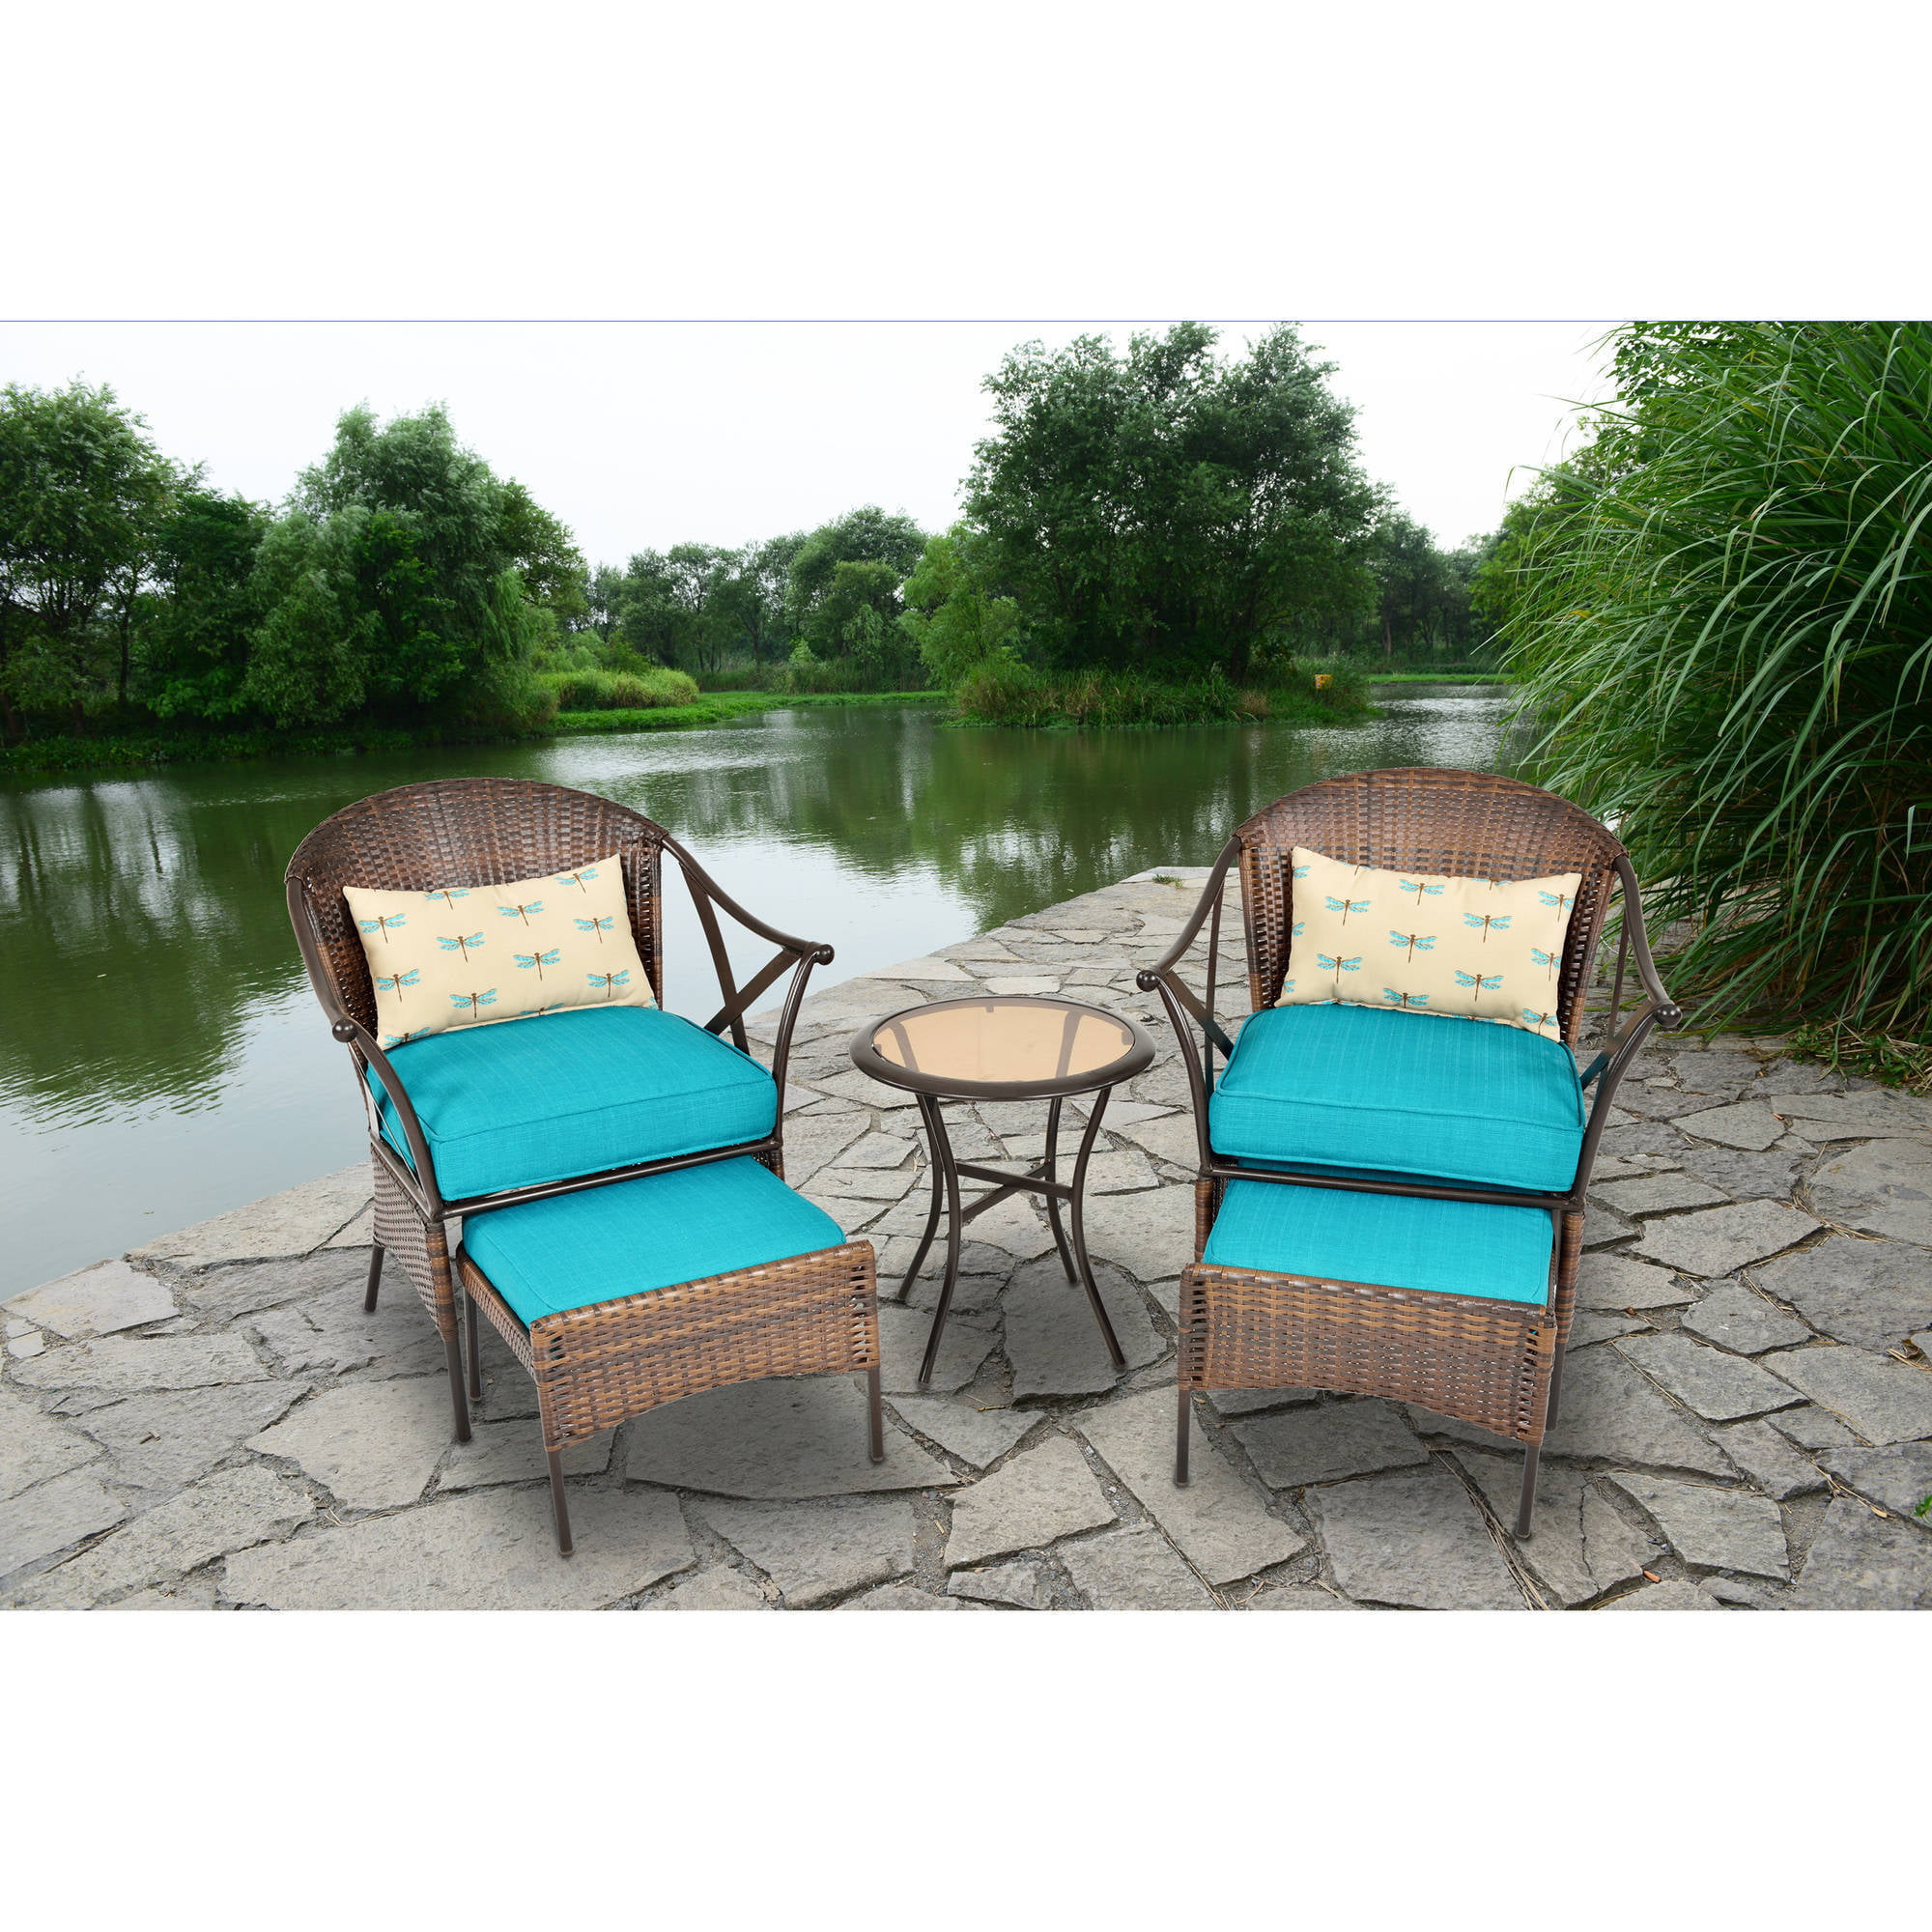 Costway 3 PS Outdoor Rattan Patio Furniture Set Backyard Garden